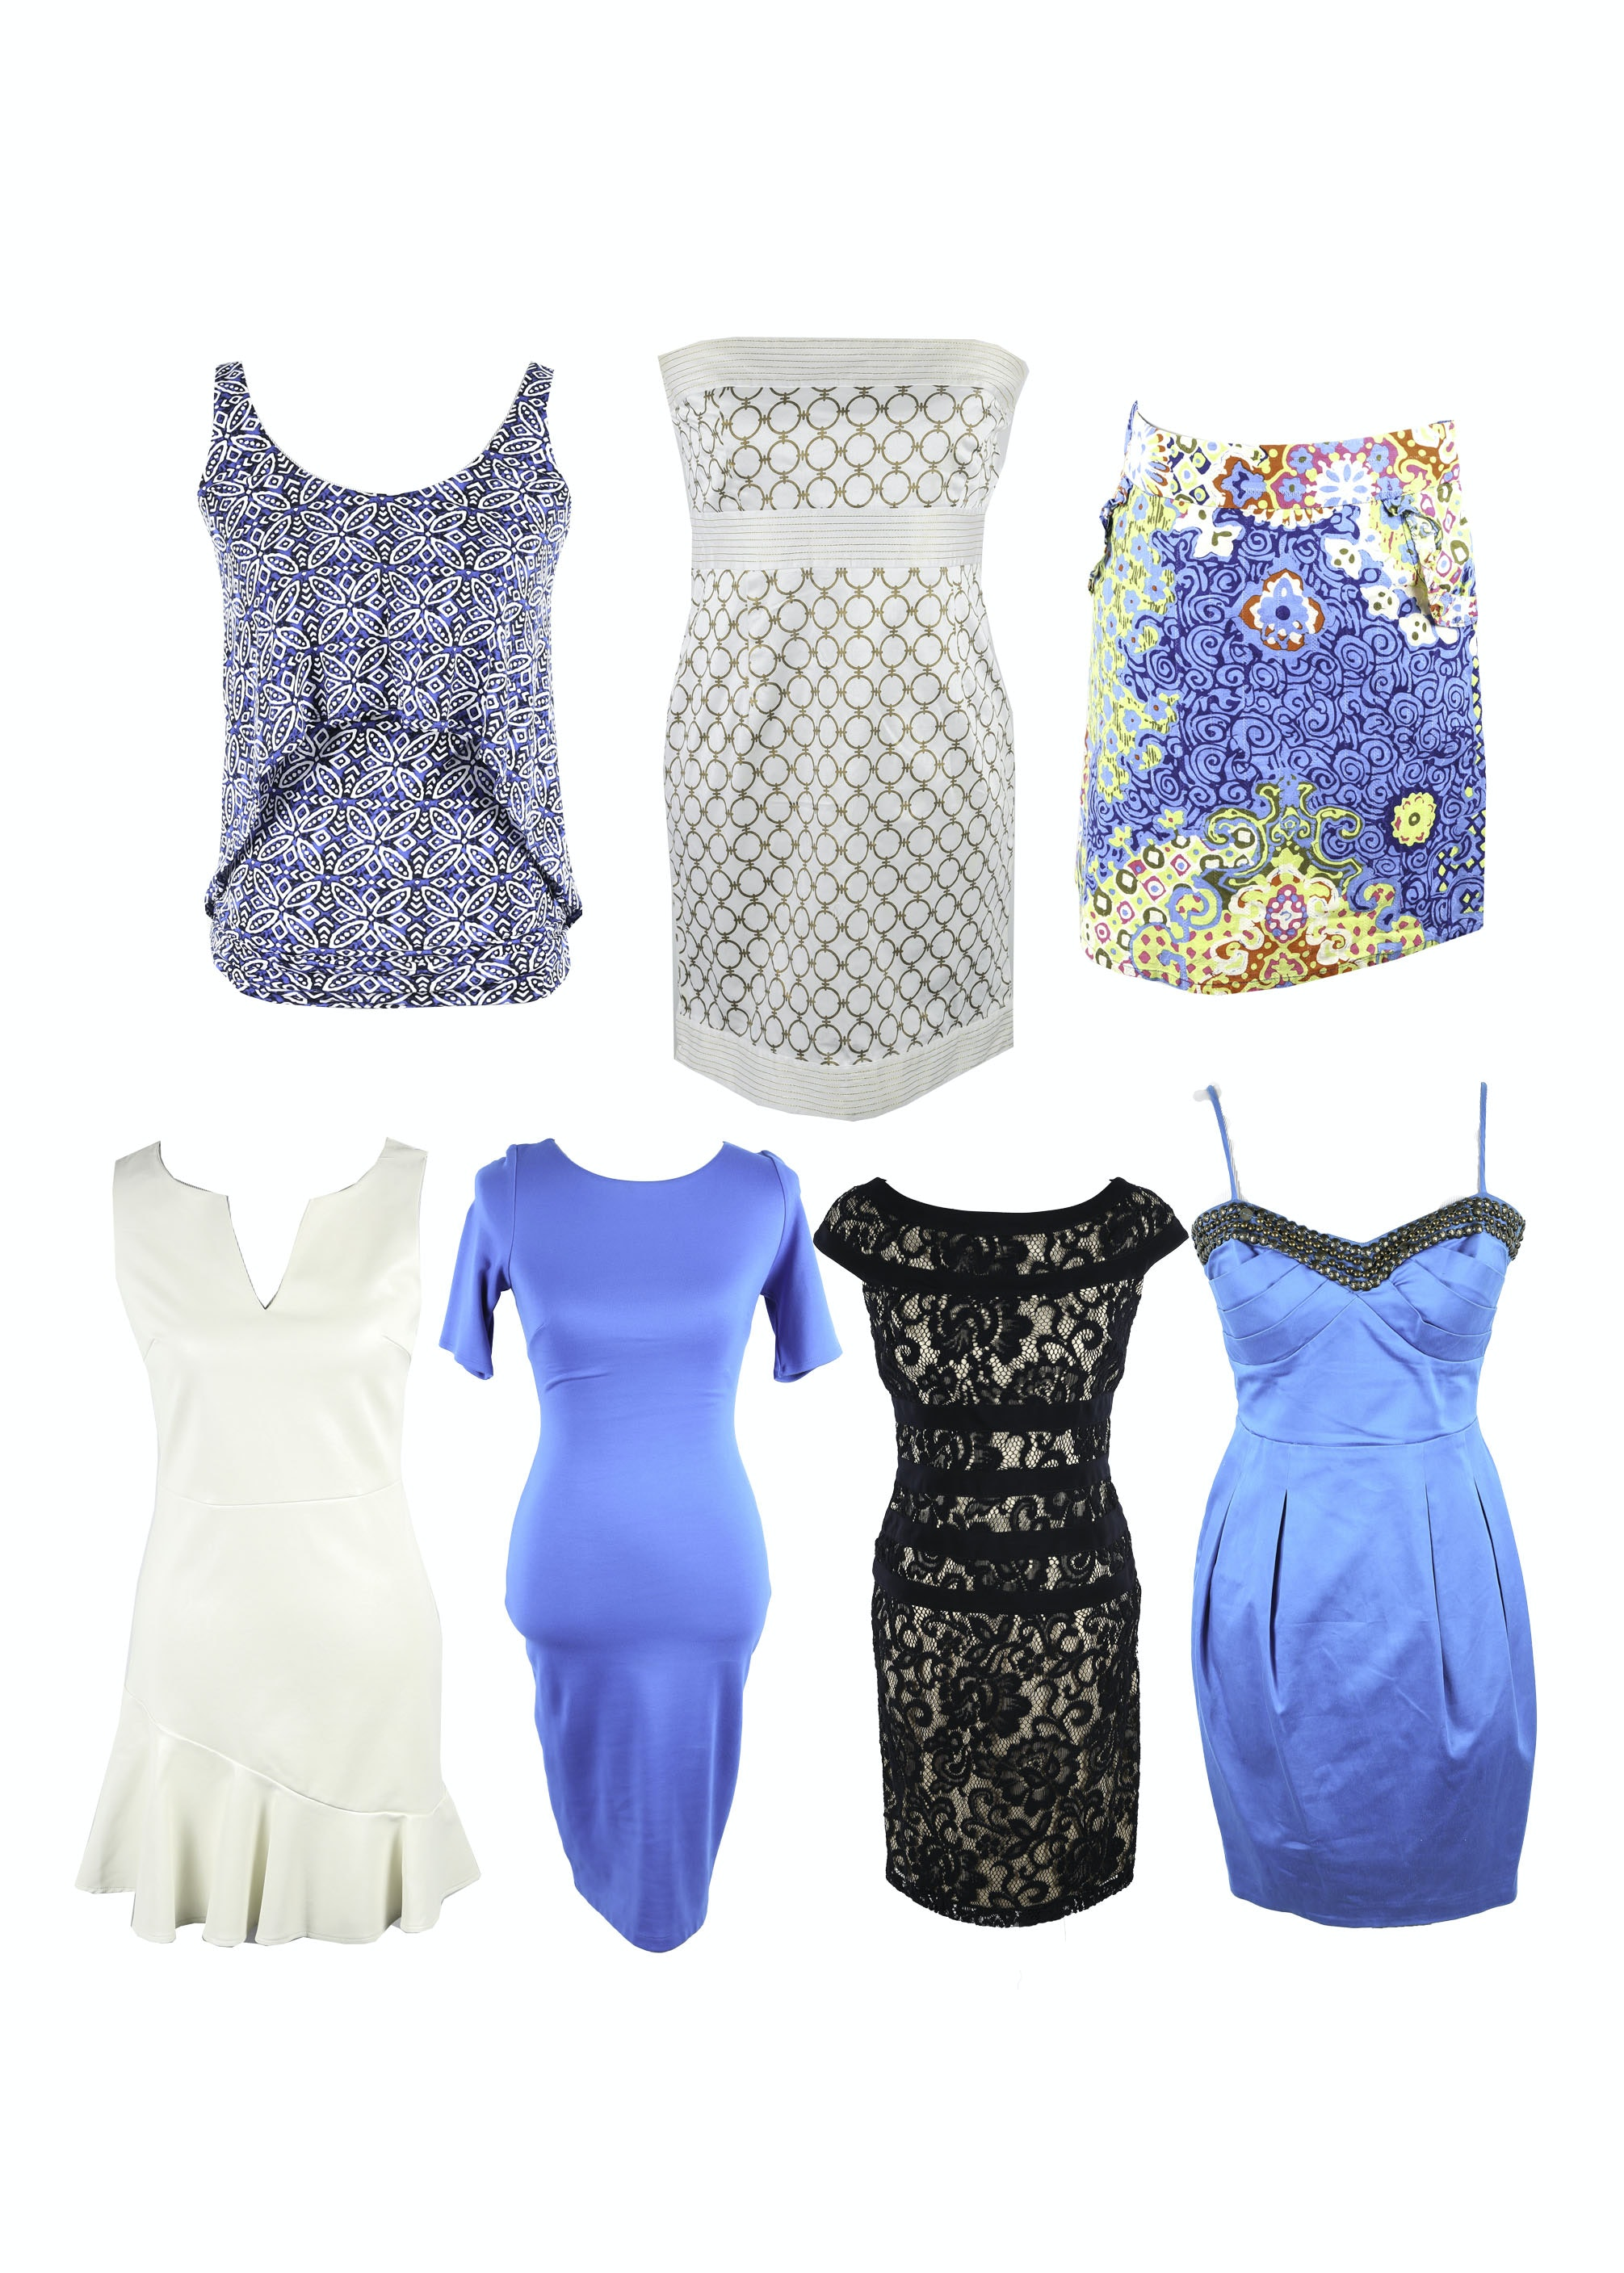 Collection of Women's Cocktail Attire